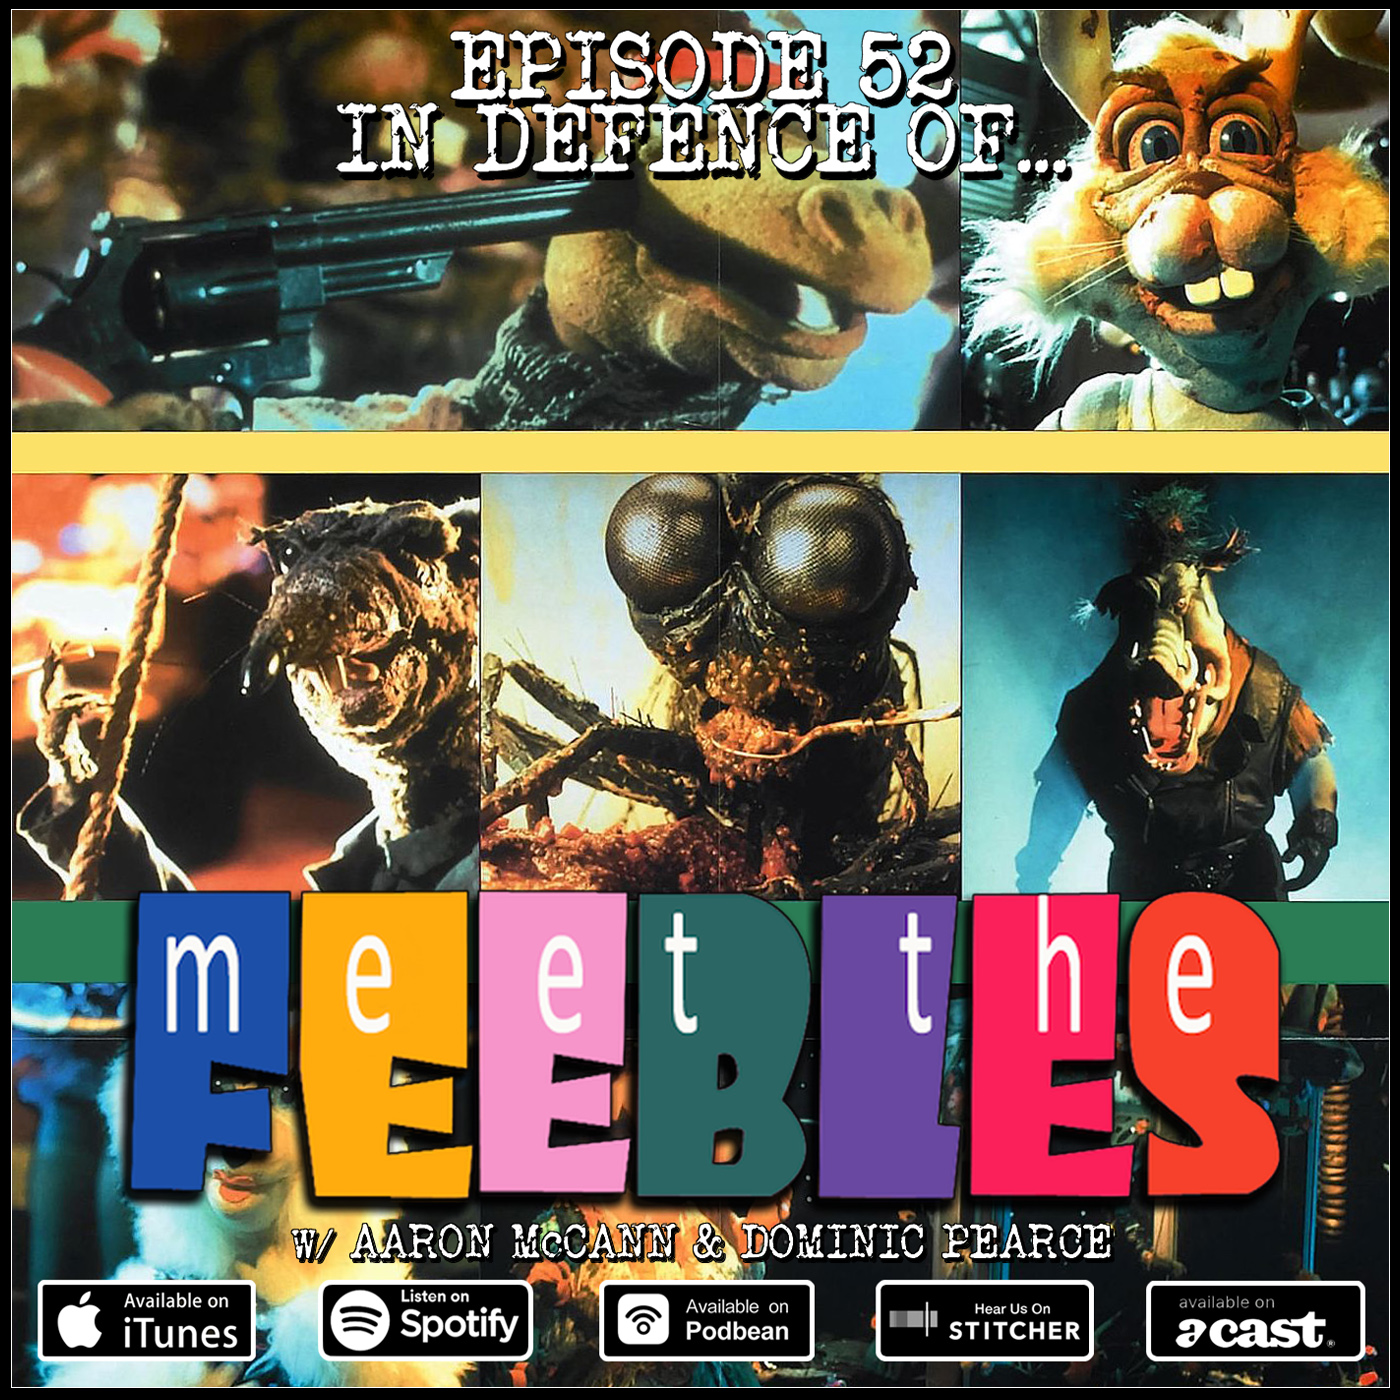 52: In Defence of… Meet The Feebles (w/ Aaron McCann & Dominic Pearce)